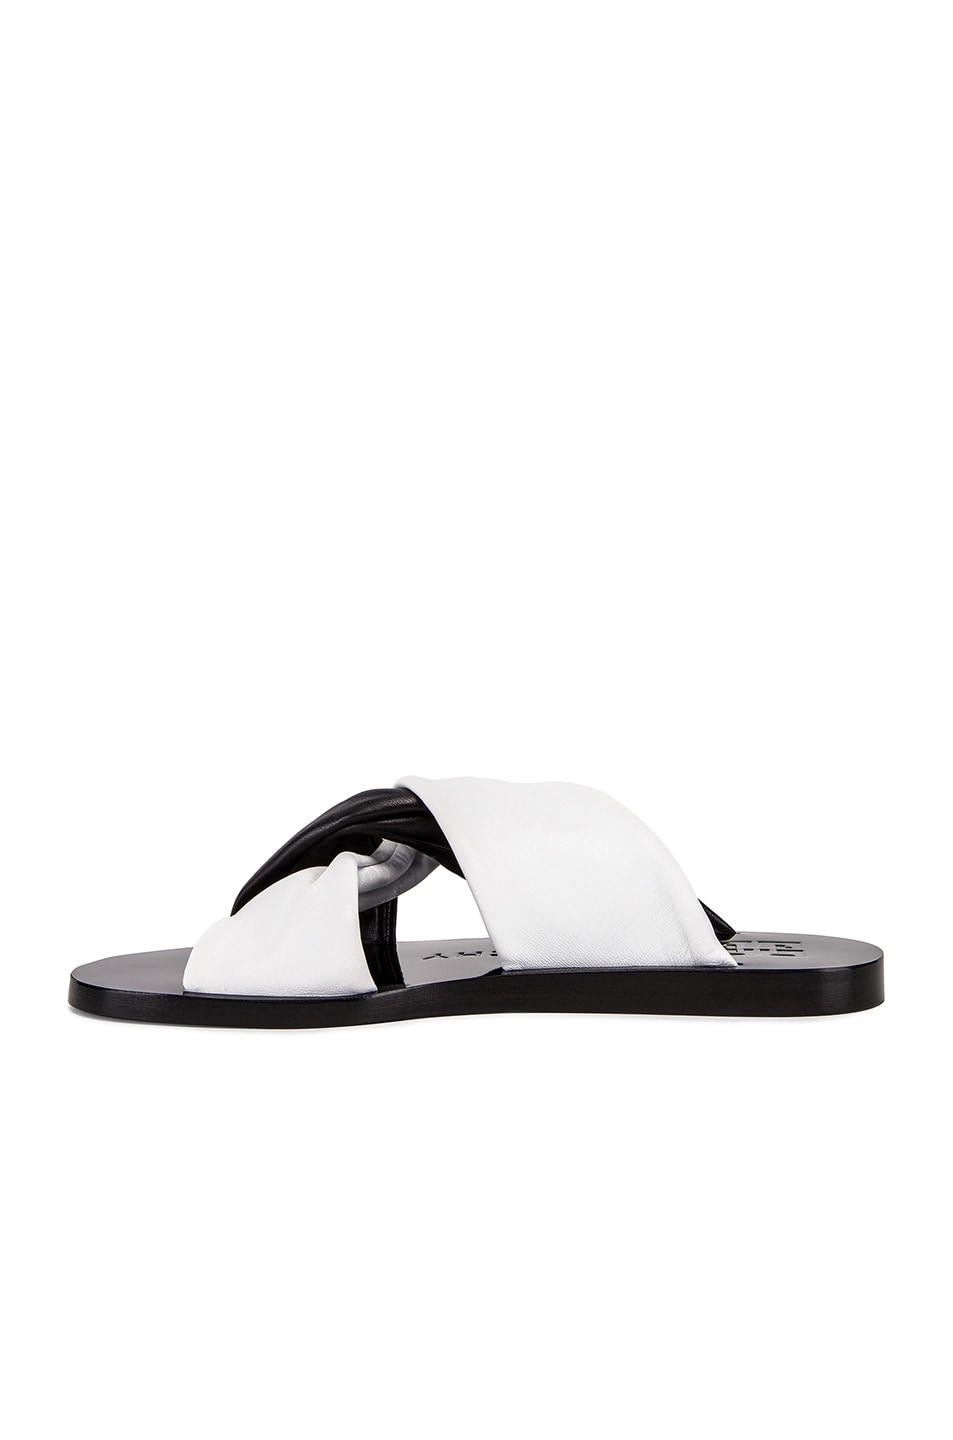 Image 5 of Givenchy Tie Flat Sandals in Black & White